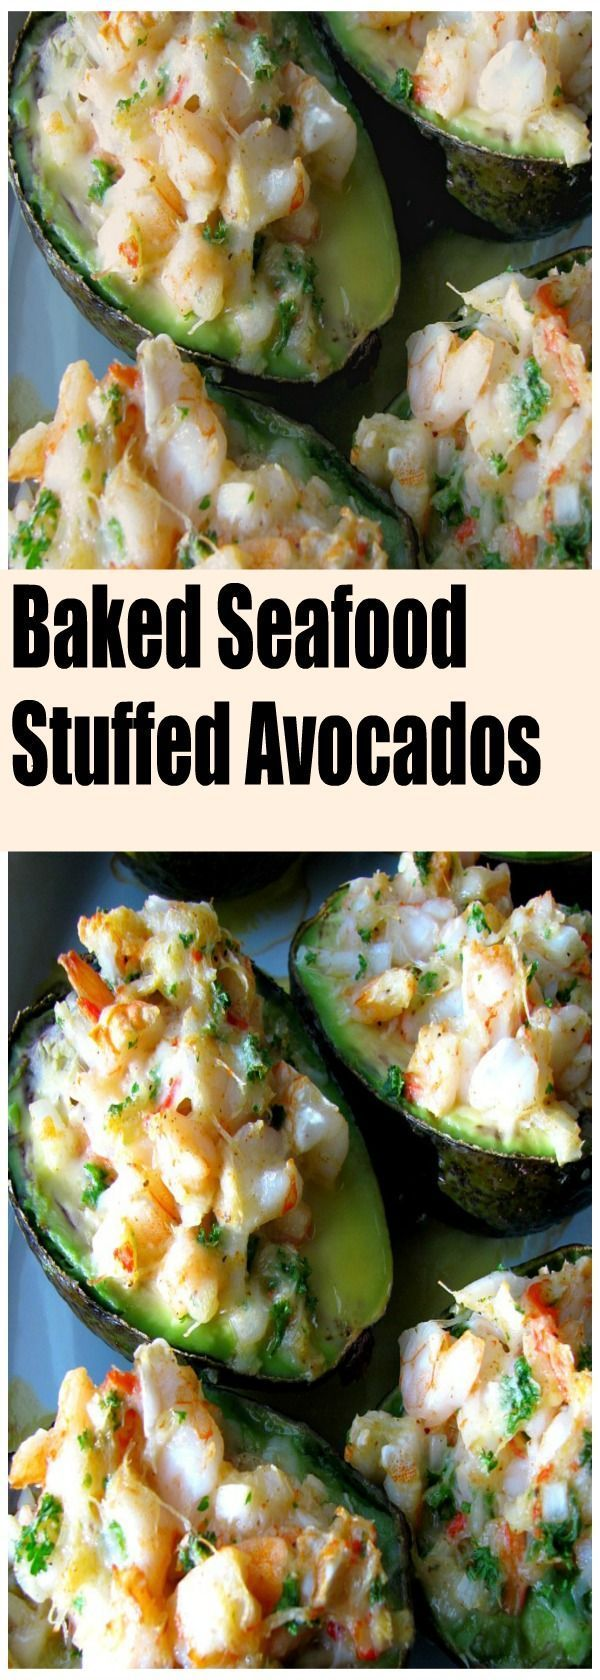 Photo of Baked Seafood Stuffed Avocados